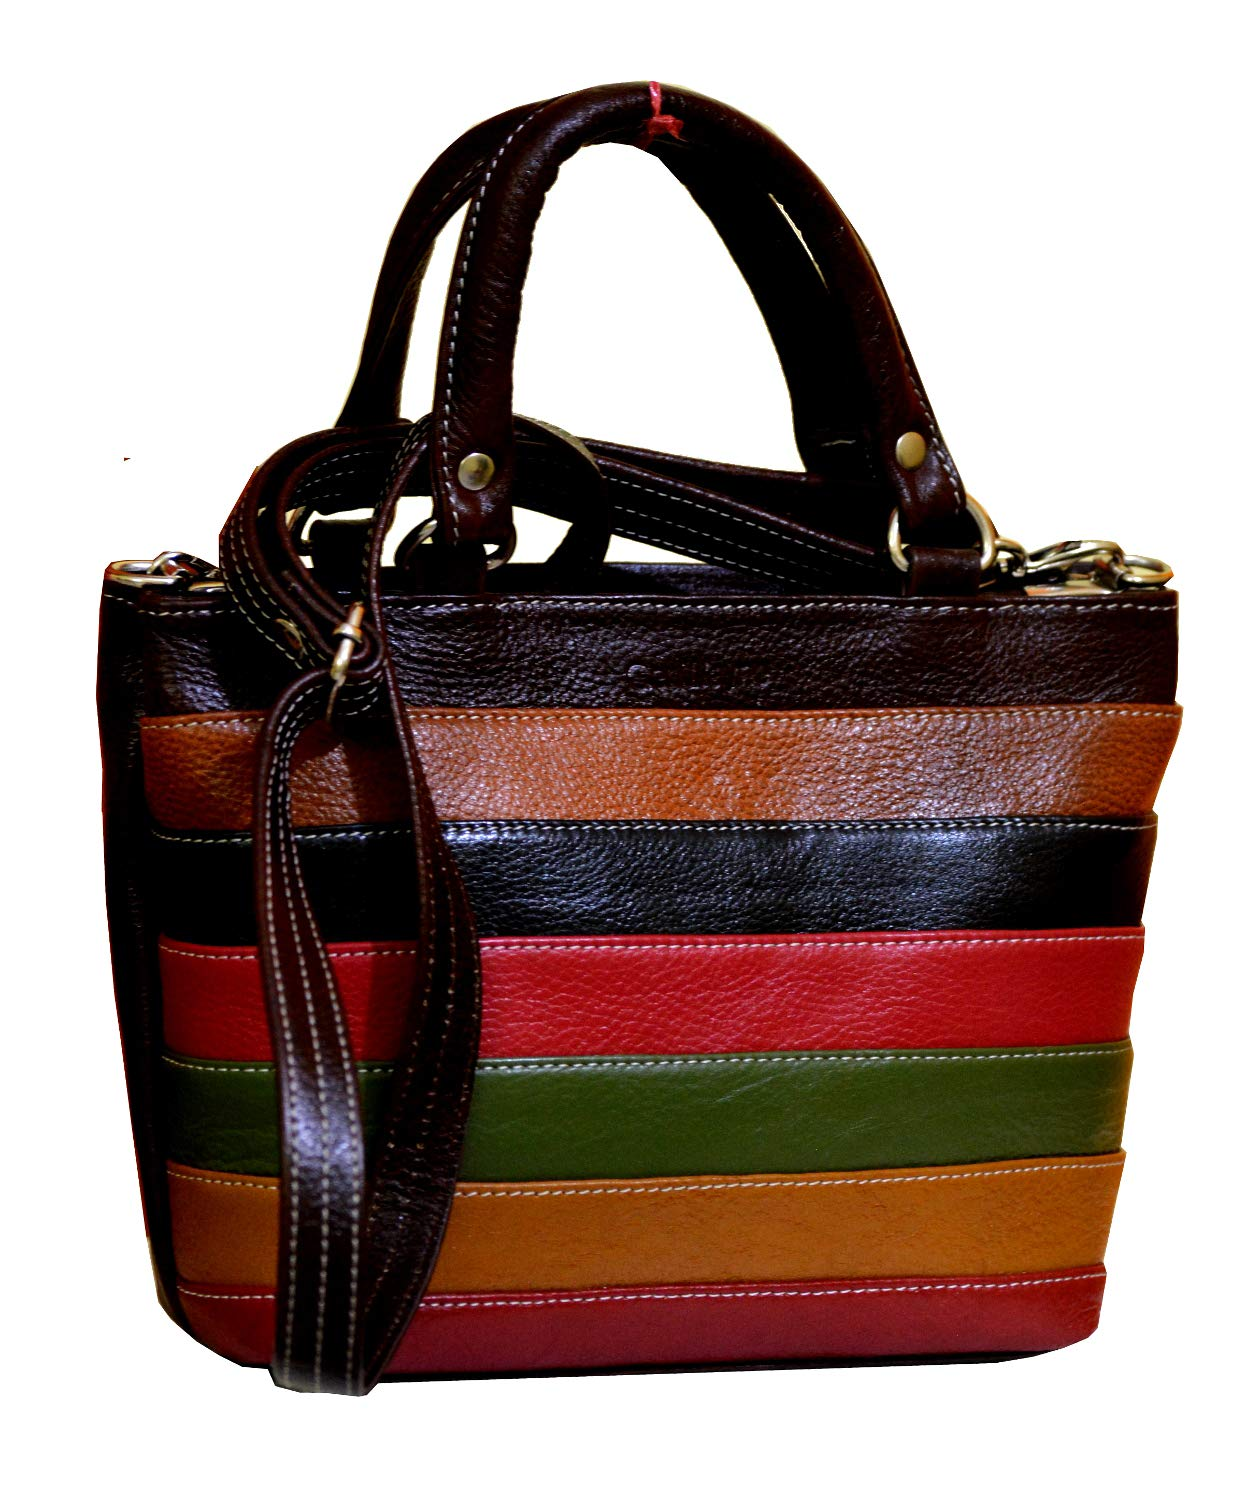 c93fe47fa1 GenWayne small stylish leather handbags for women side sling leather purse  (pure leather bag) (Multicolor)